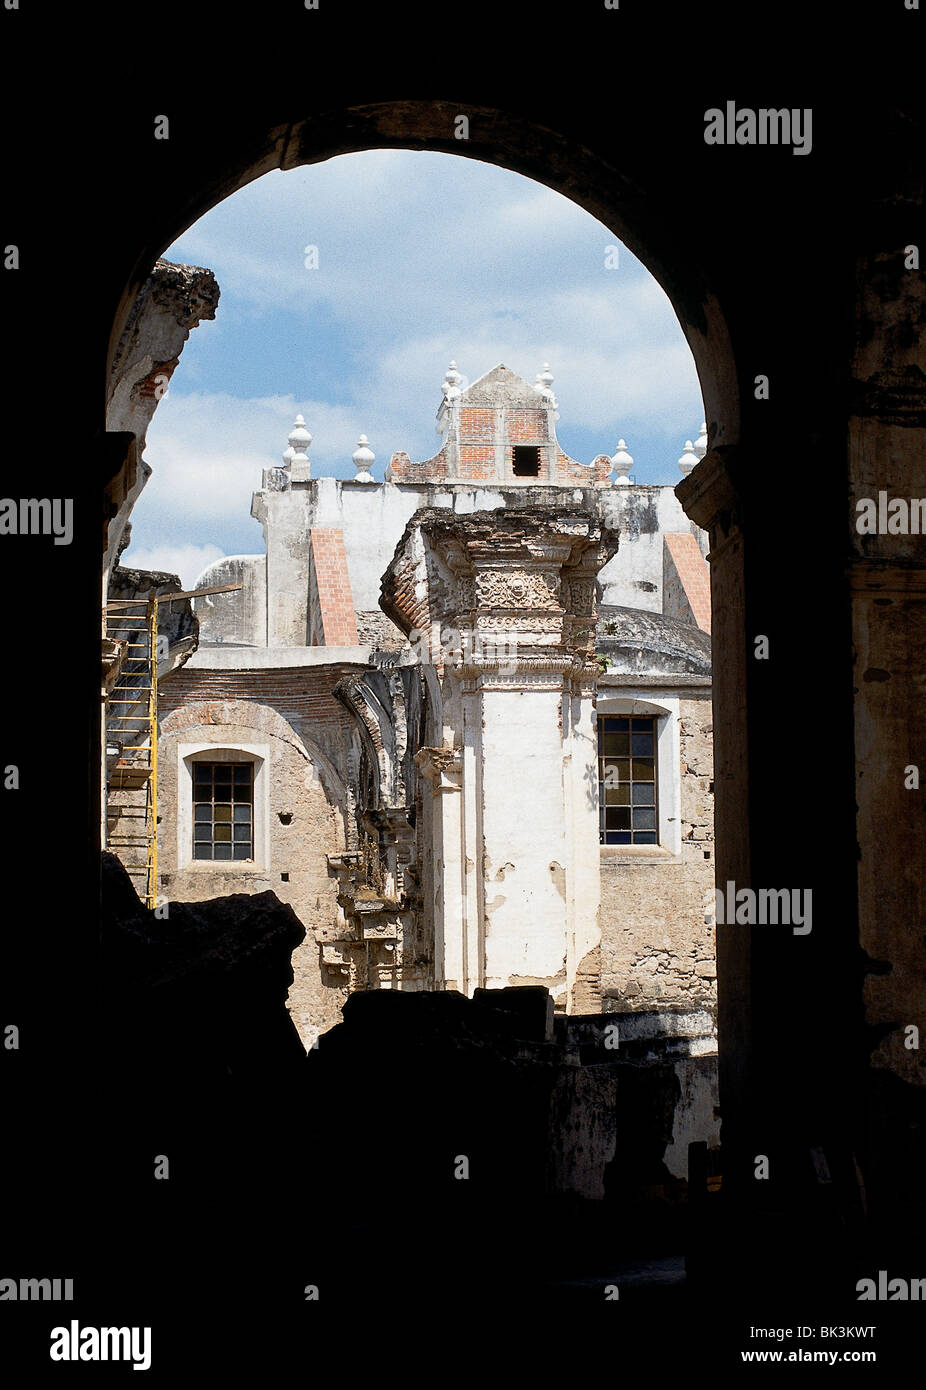 Buildings damaged by earthquakes in Antigua, Guatemala - Stock Image